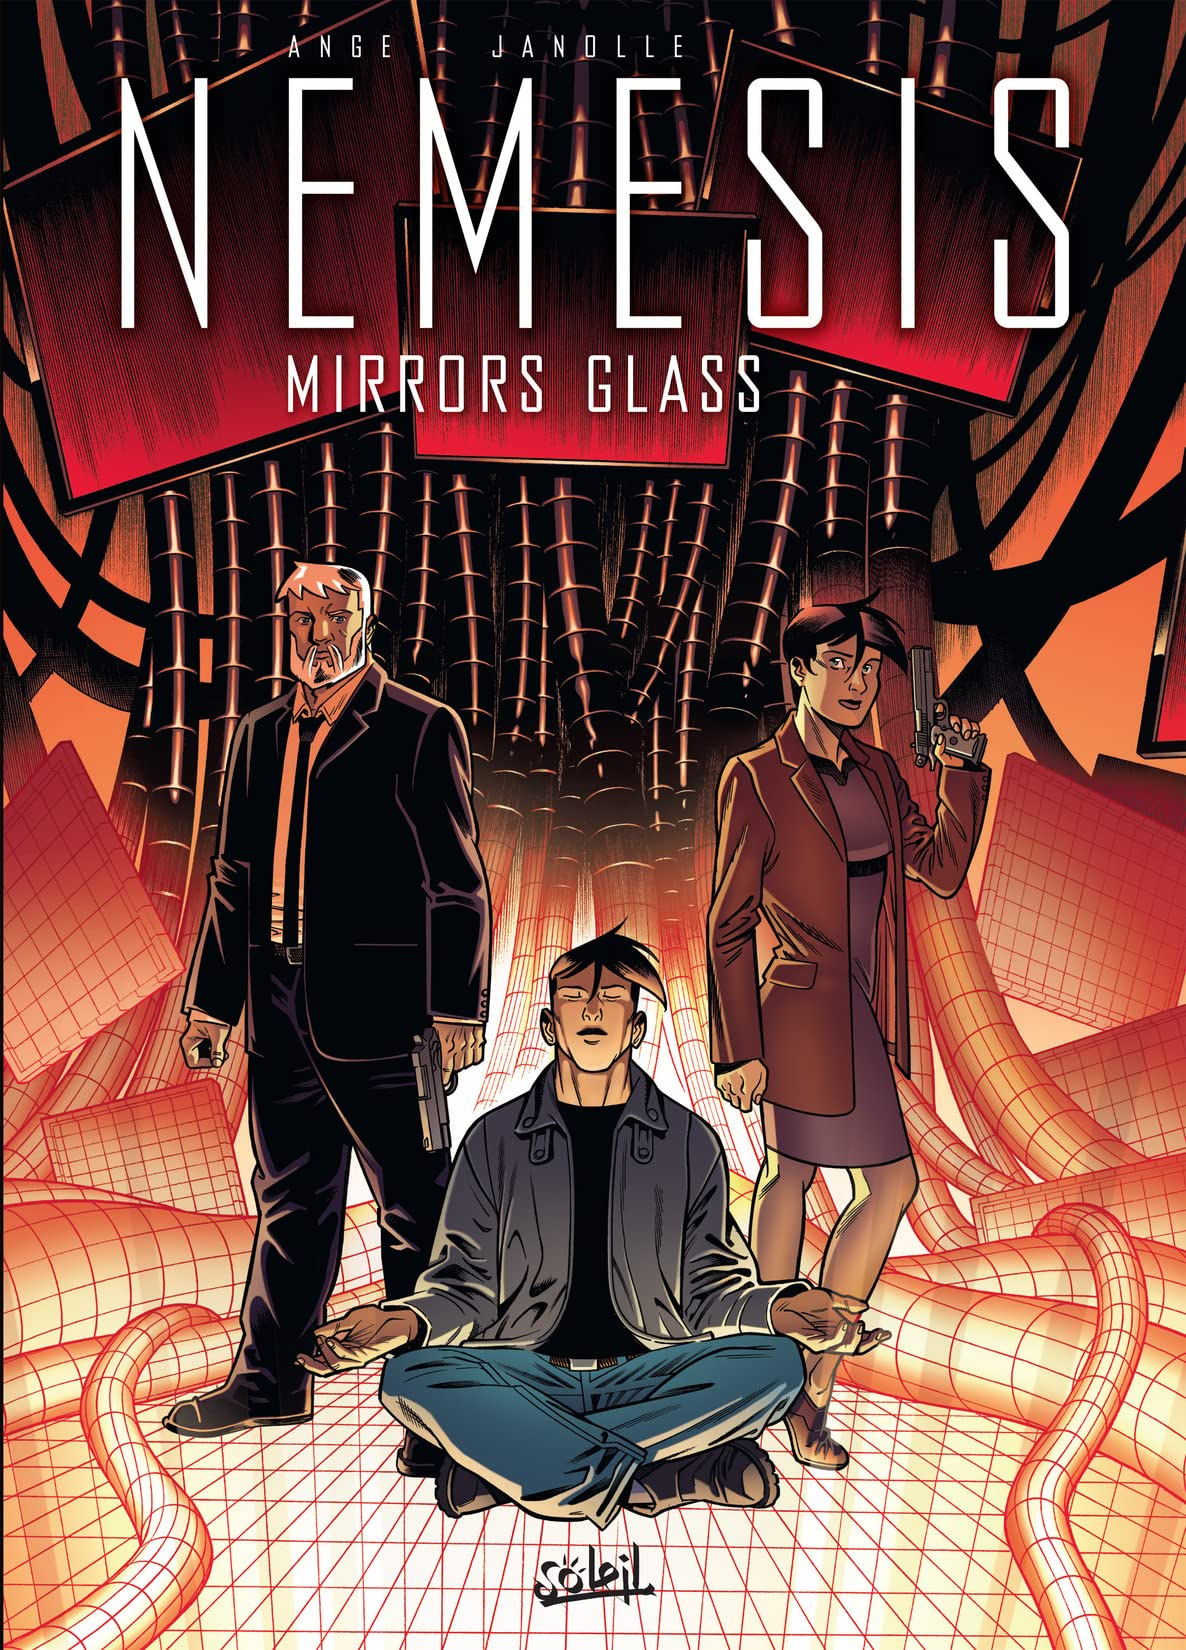 Nemesis Vol. 8: Mirrors glass